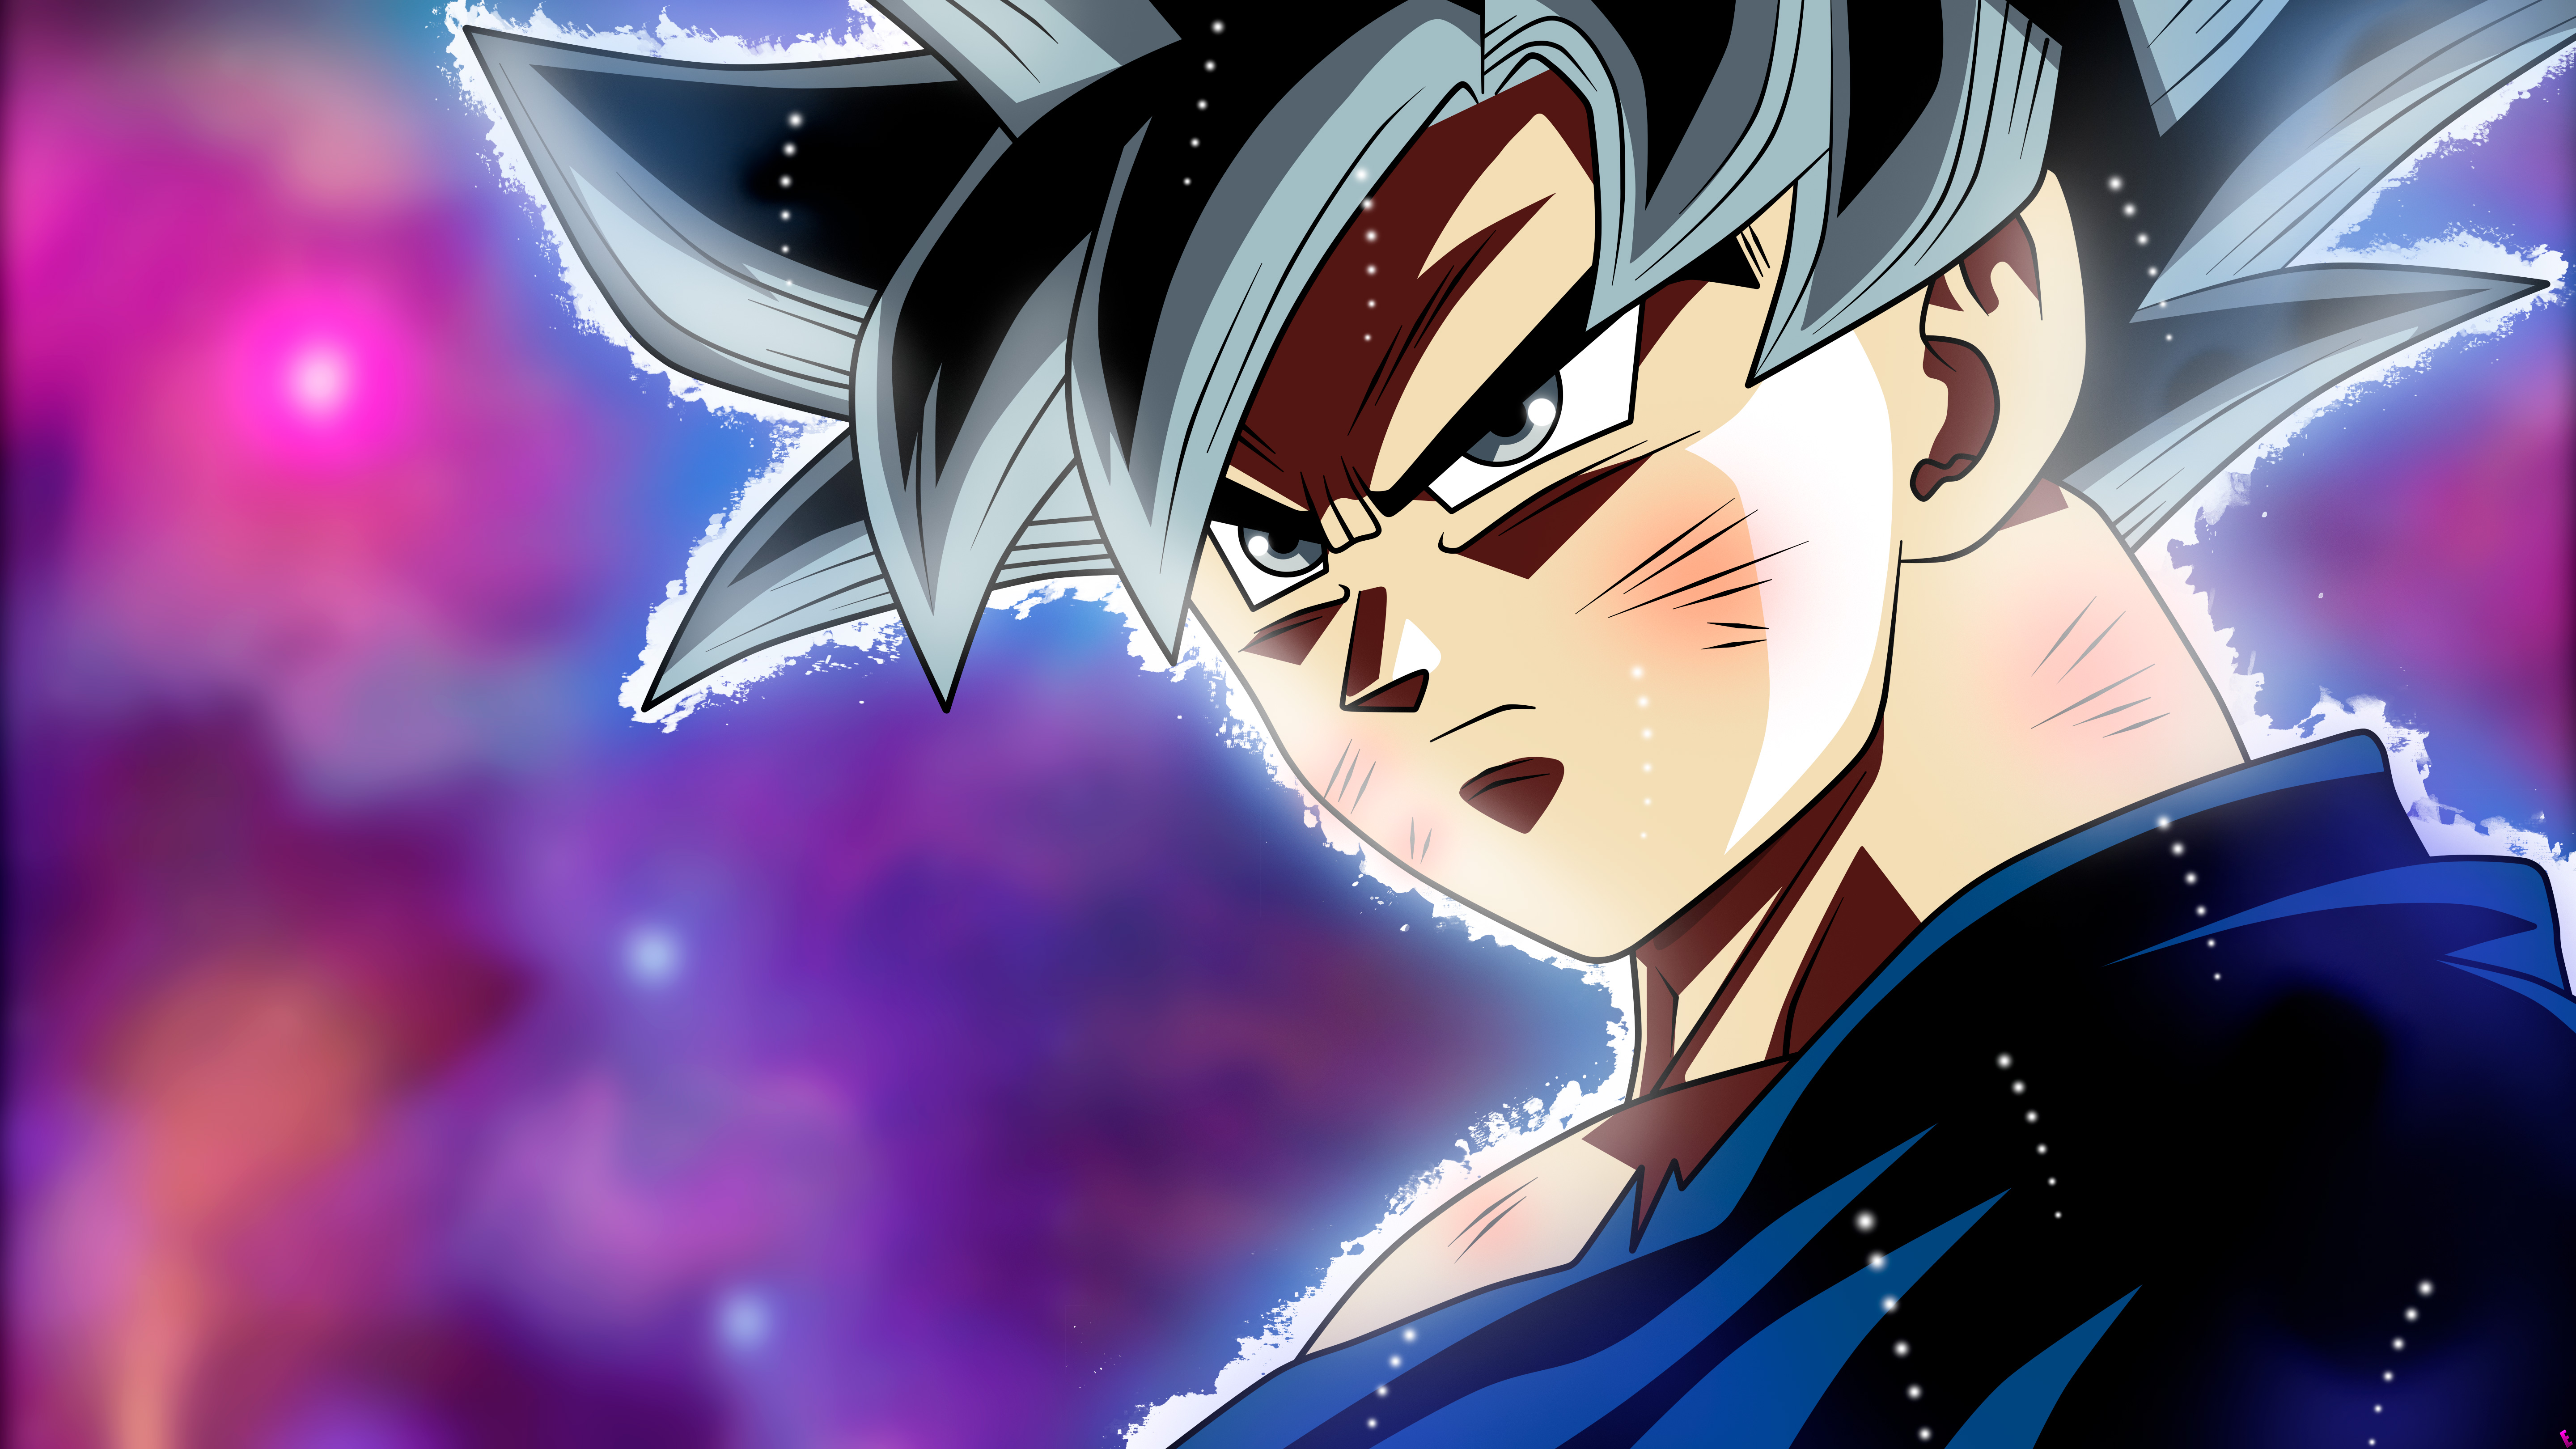 Dragon ball super goku 5k hd anime 4k wallpapers images - 5k anime wallpaper ...